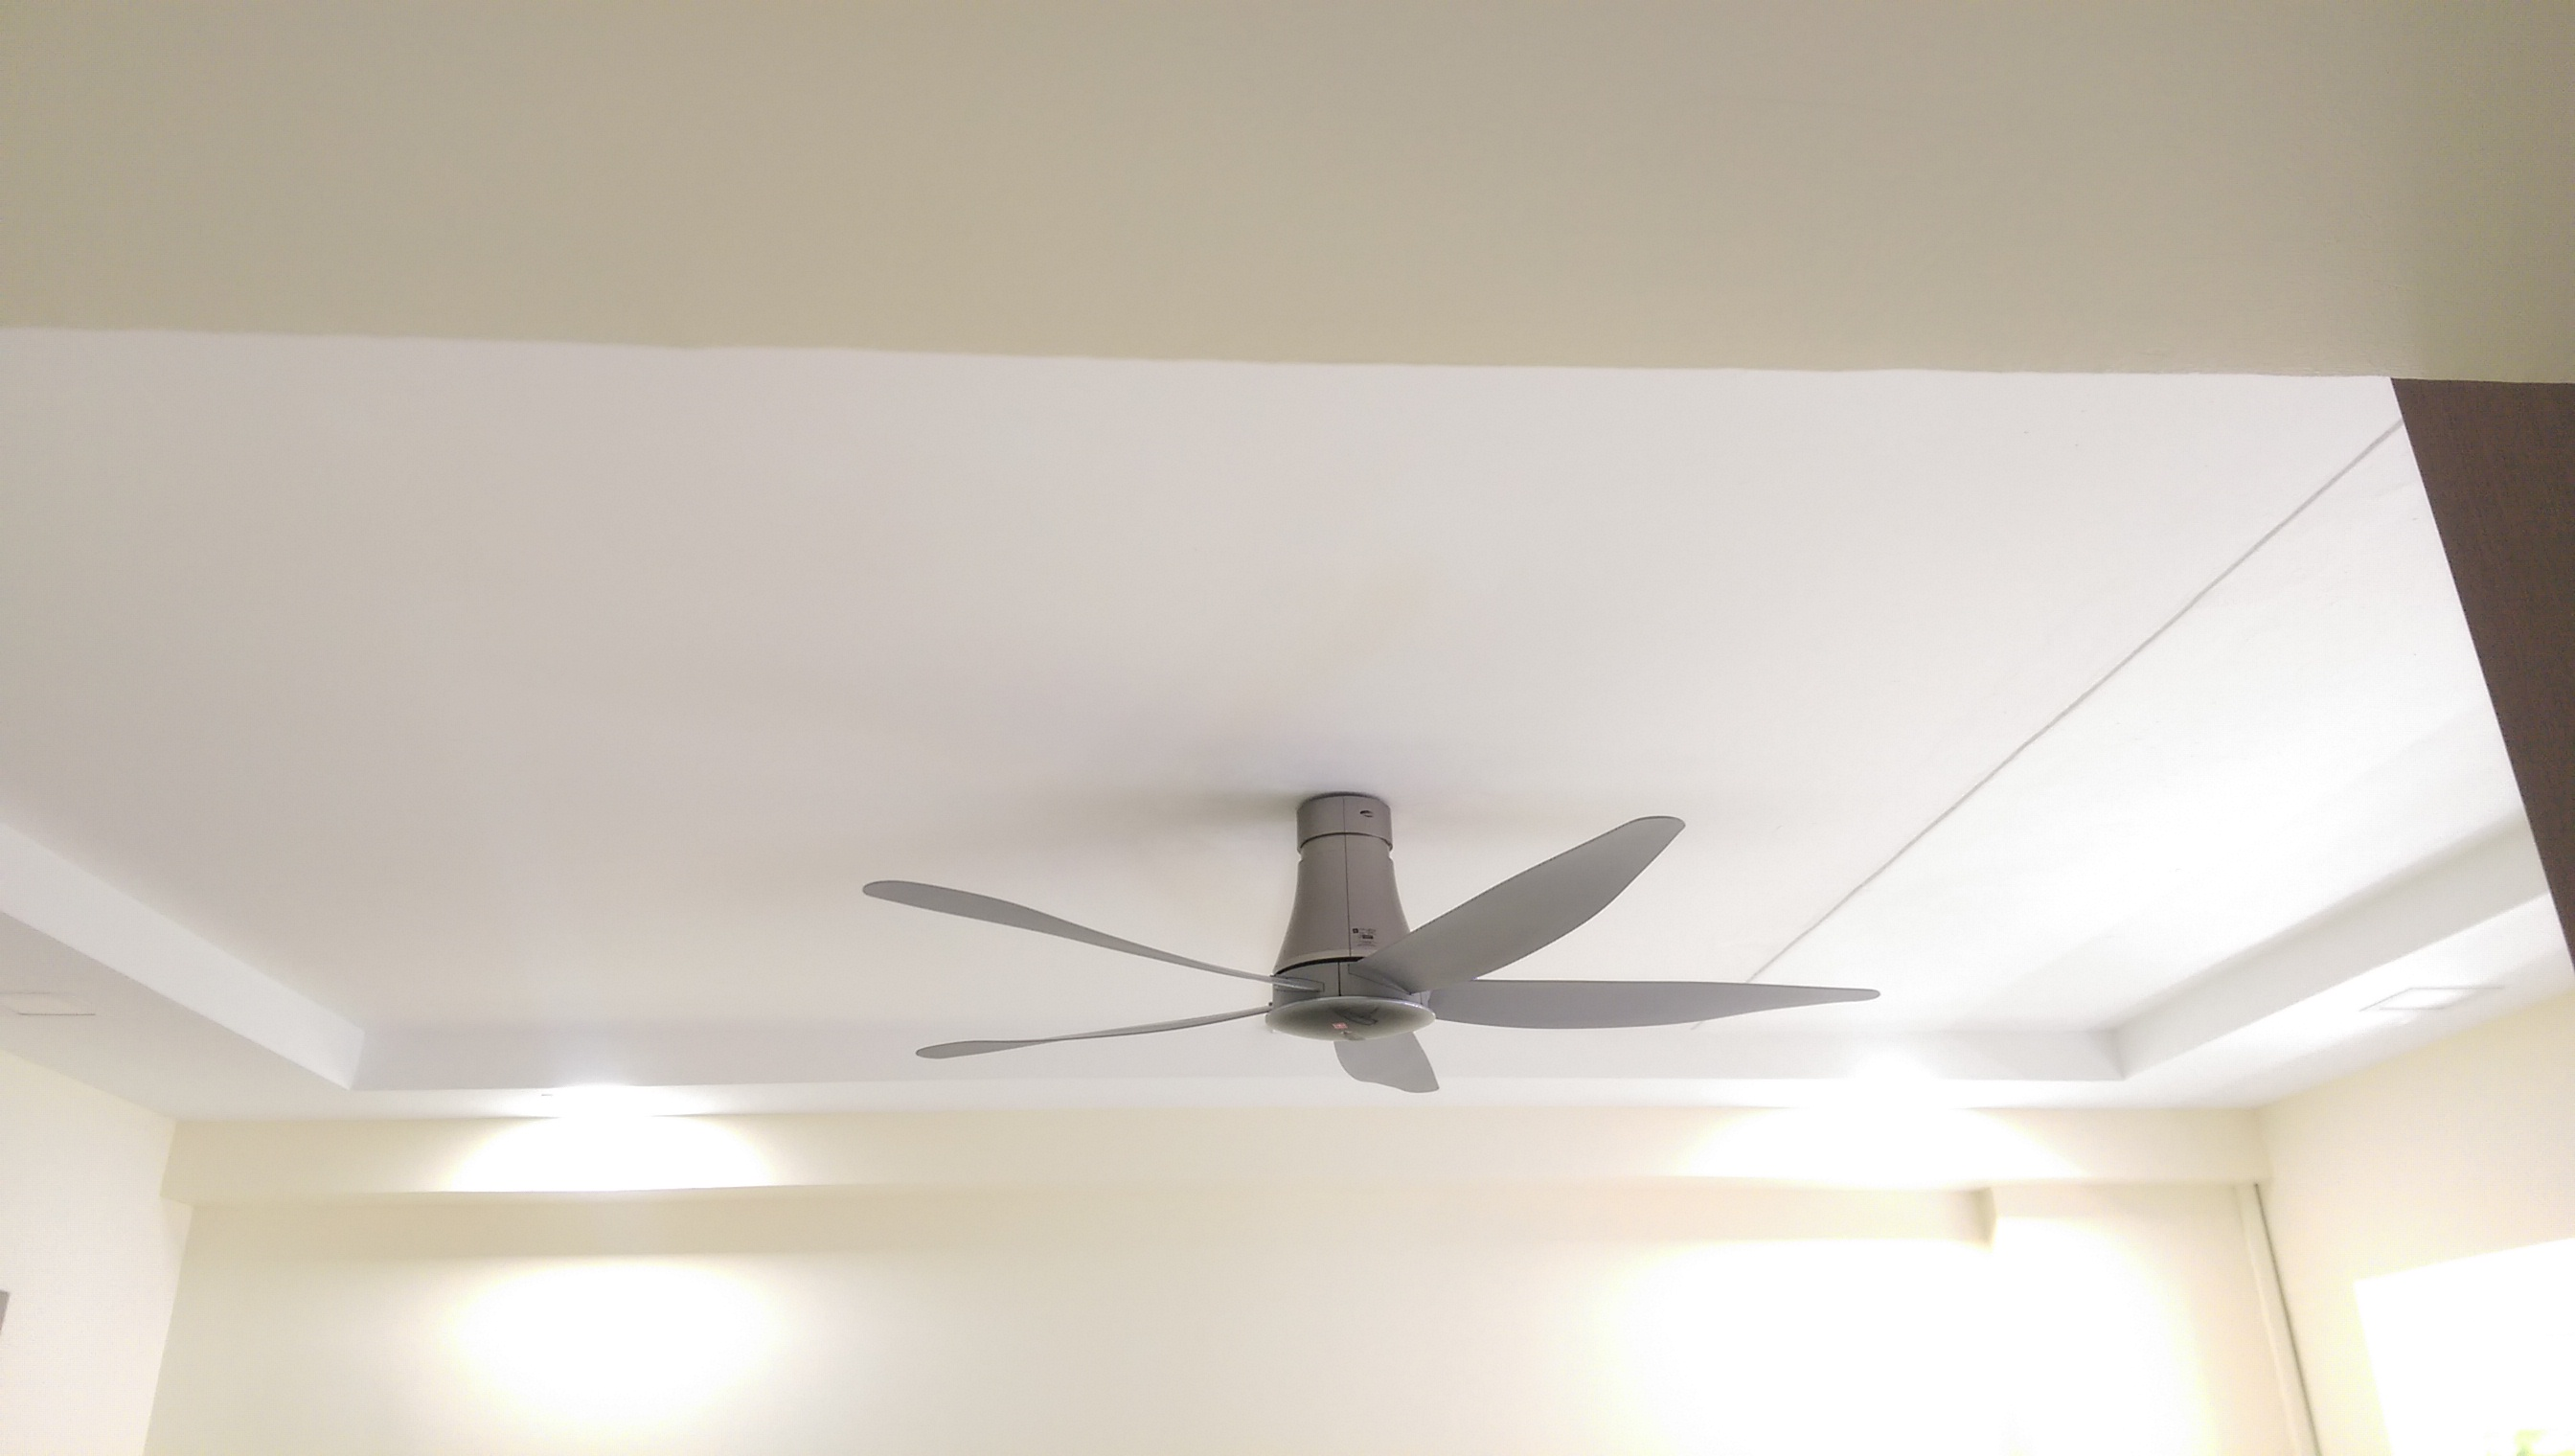 reverse fans remote twin ceilings productdetail b malaysia ceiling fan wall pack deka cooling blades ventilatio control w